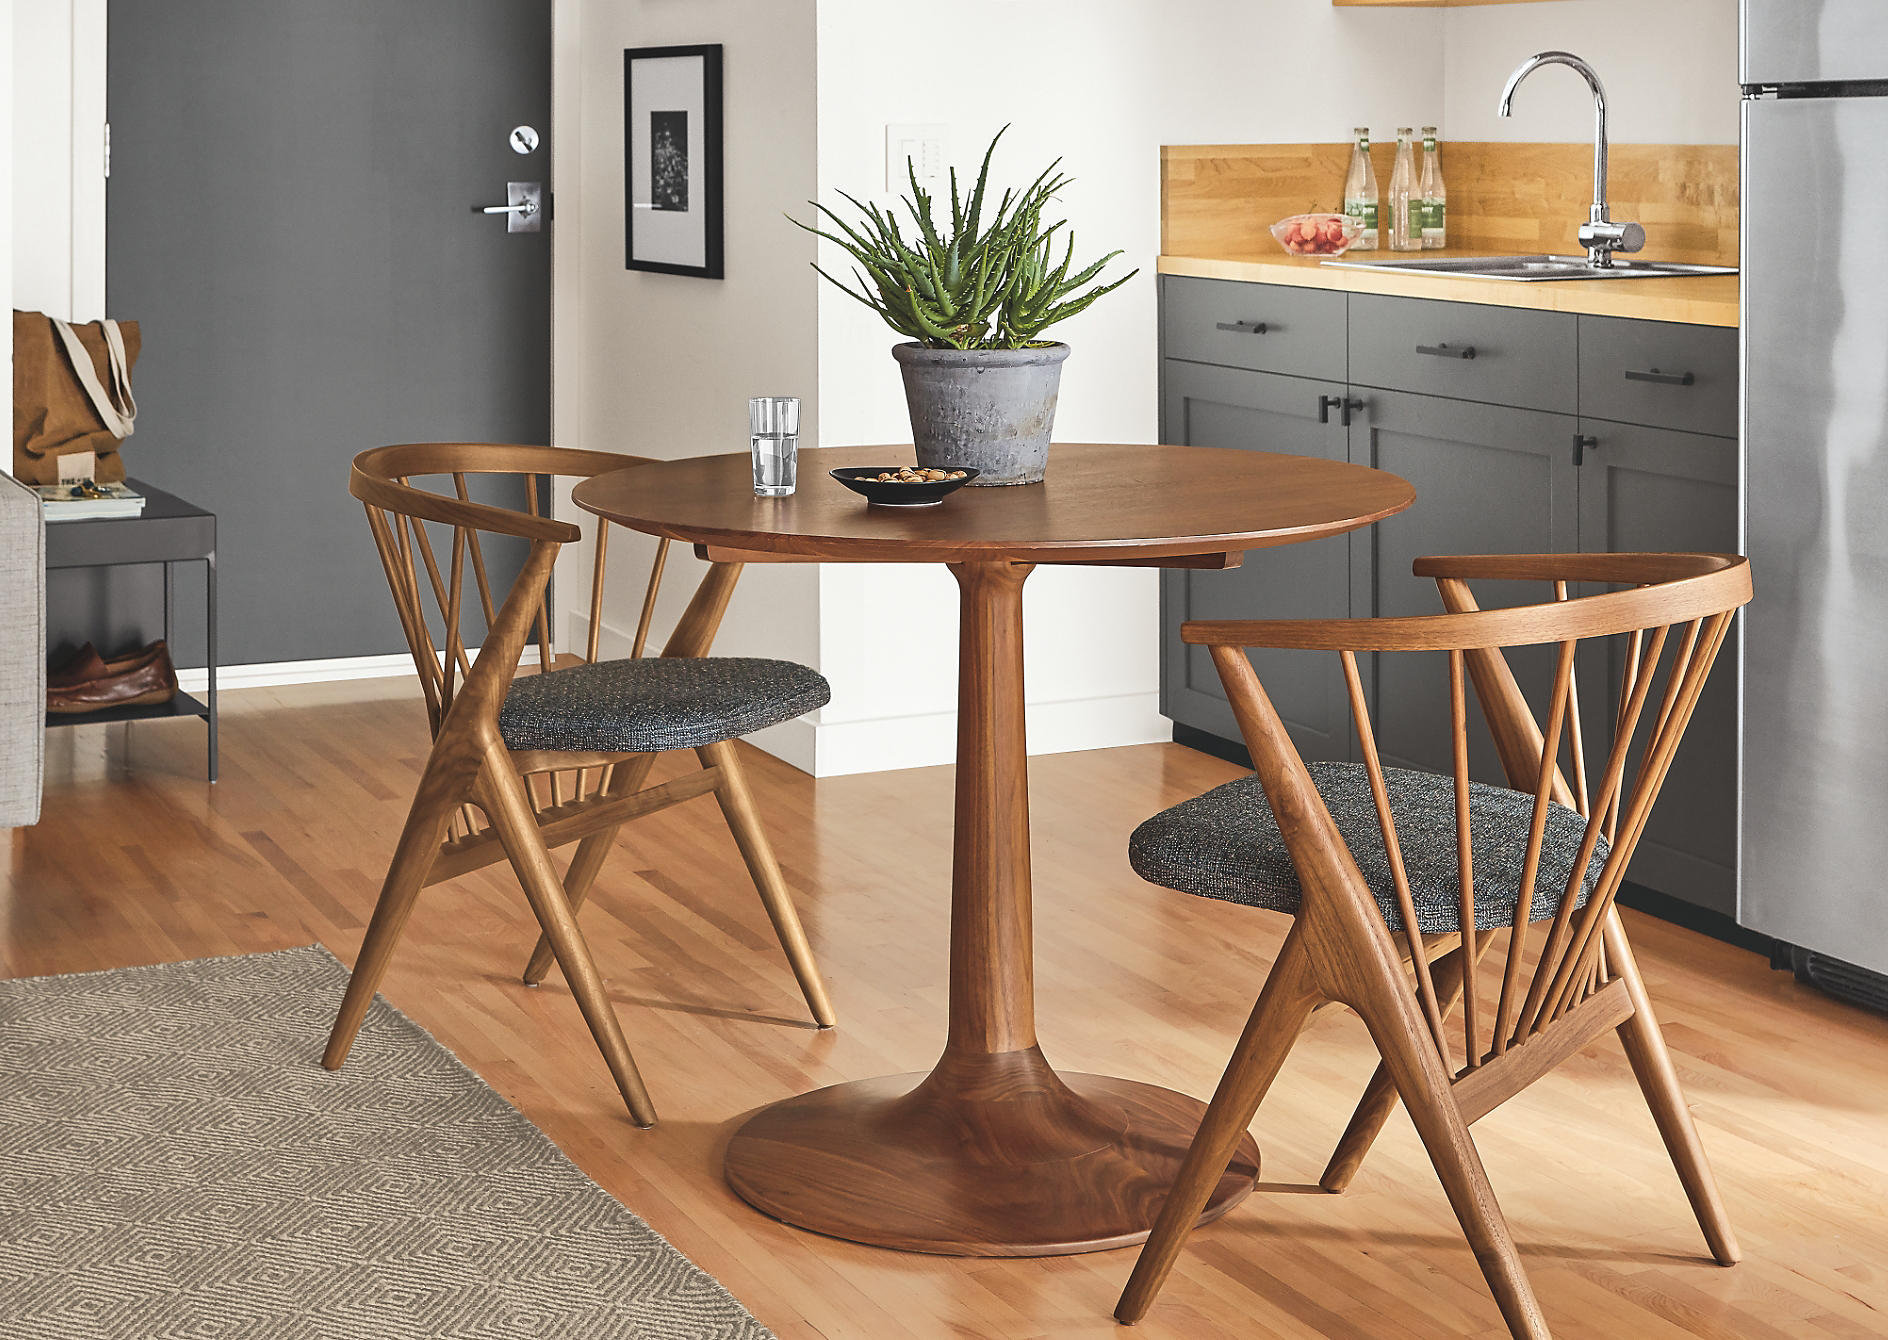 Dining Tables Chairs For Small Spaces, Dining Room Sets For Small Spaces